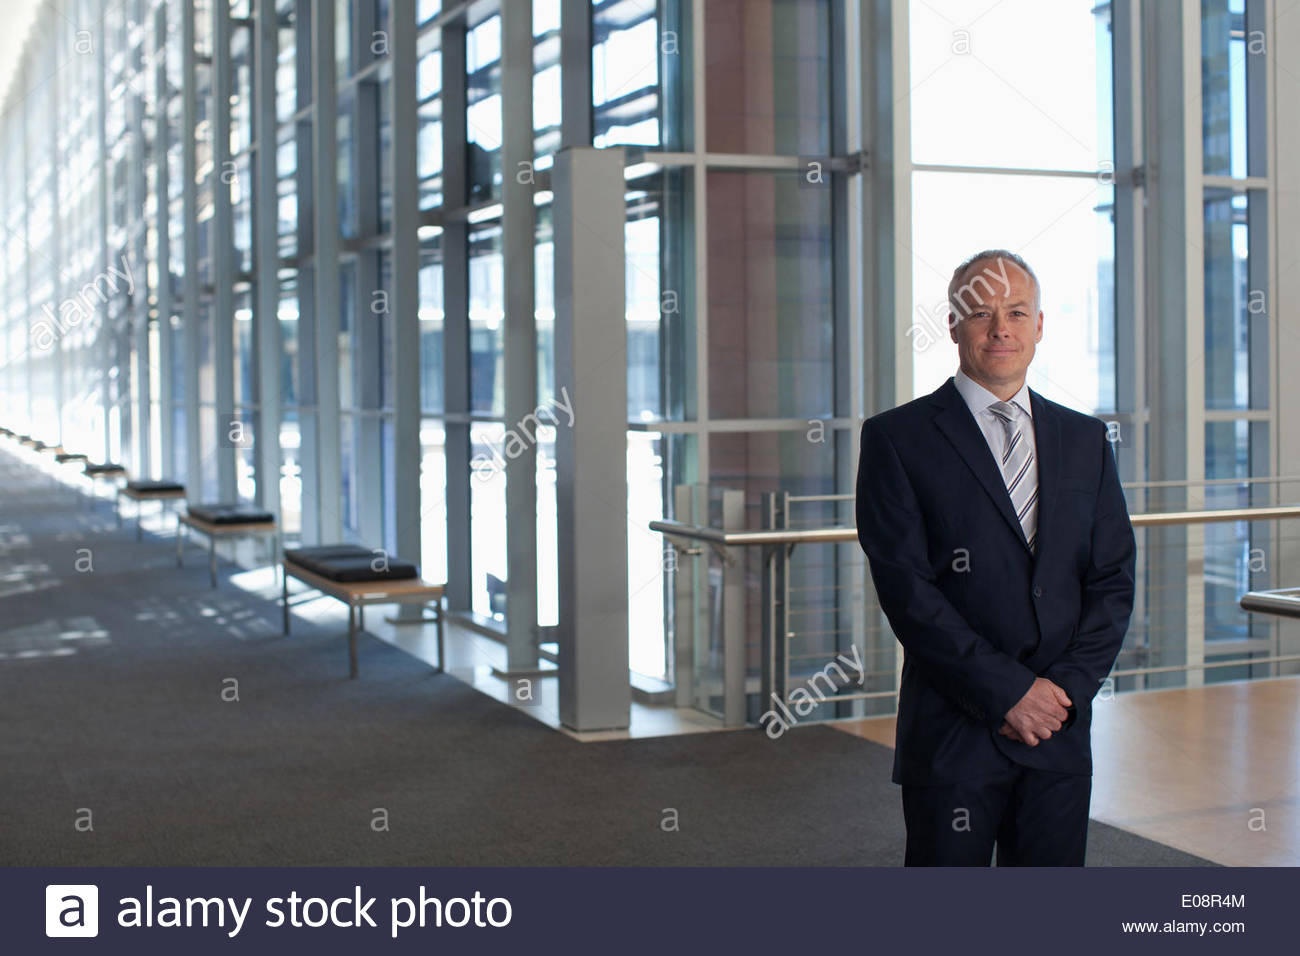 Businessman in office lobby Photo Stock